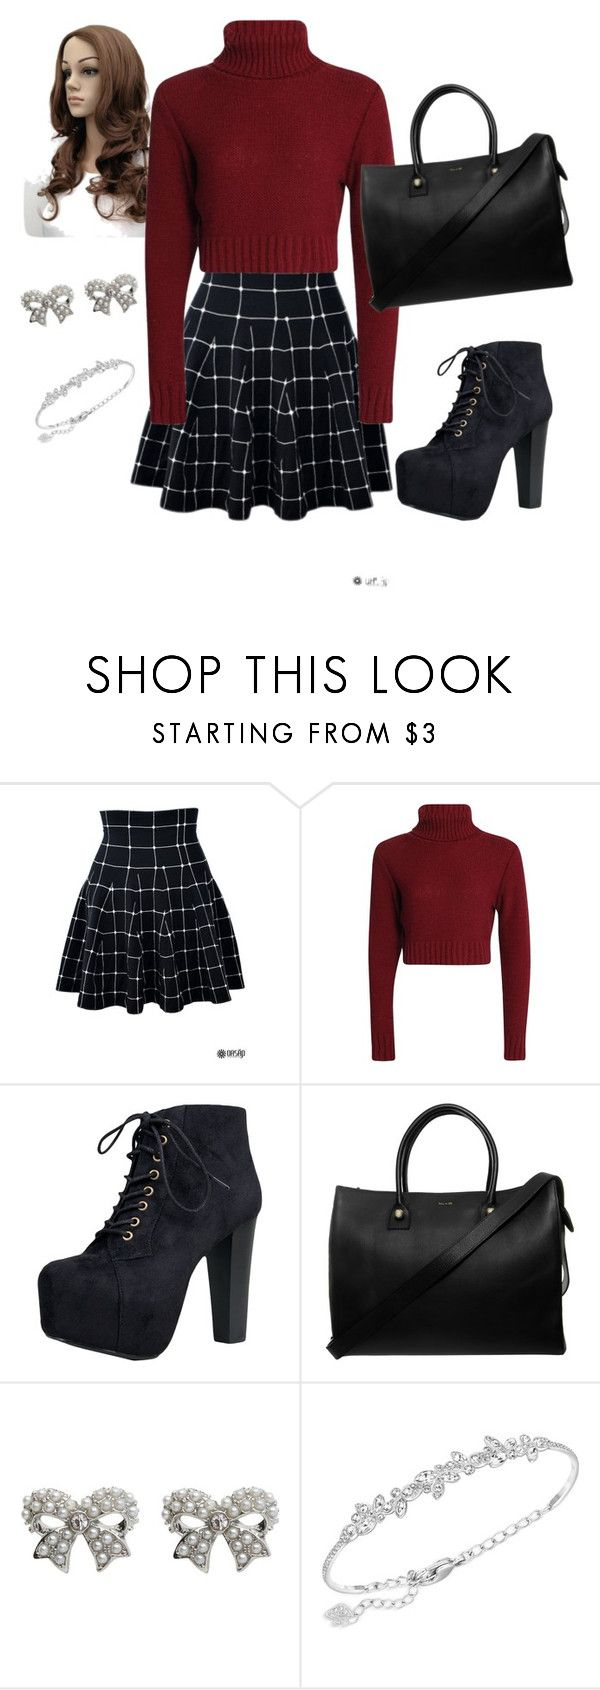 """Untitled #54"" by cmajor02 ❤ liked on Polyvore featuring Speed Limit 98, Paul & Joe, M&Co and Swarovski"